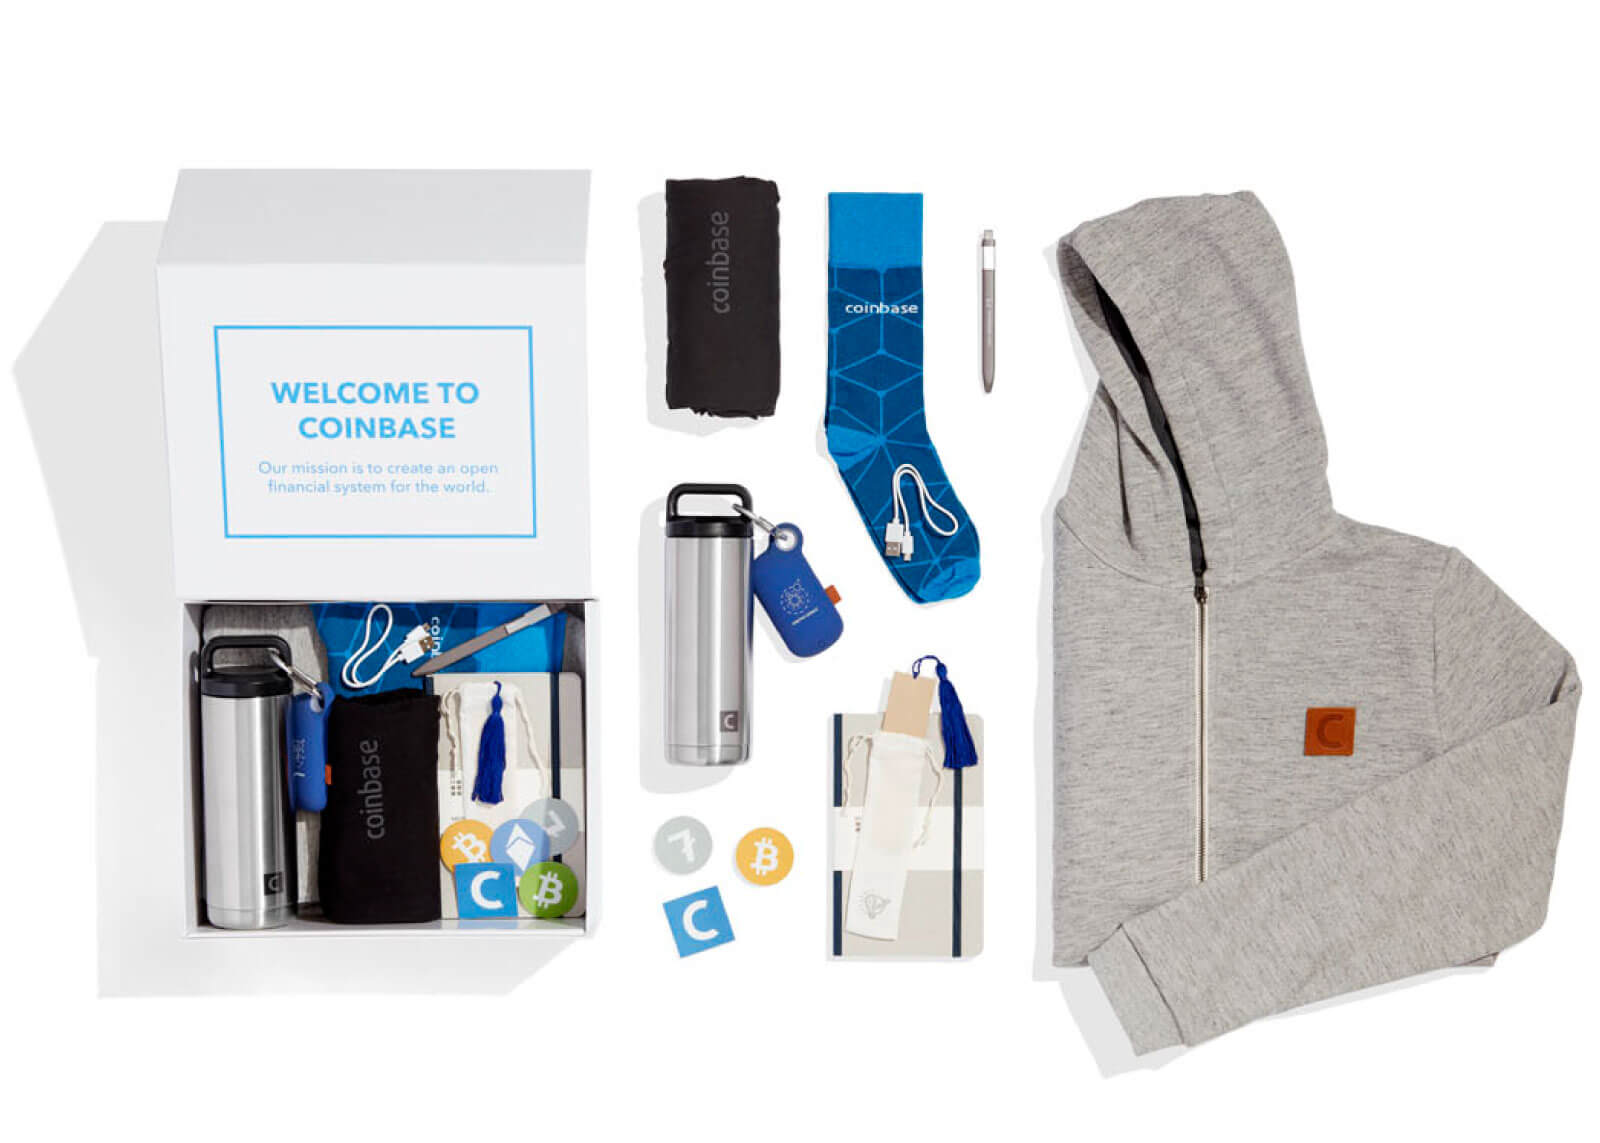 Coinbase welcome kit